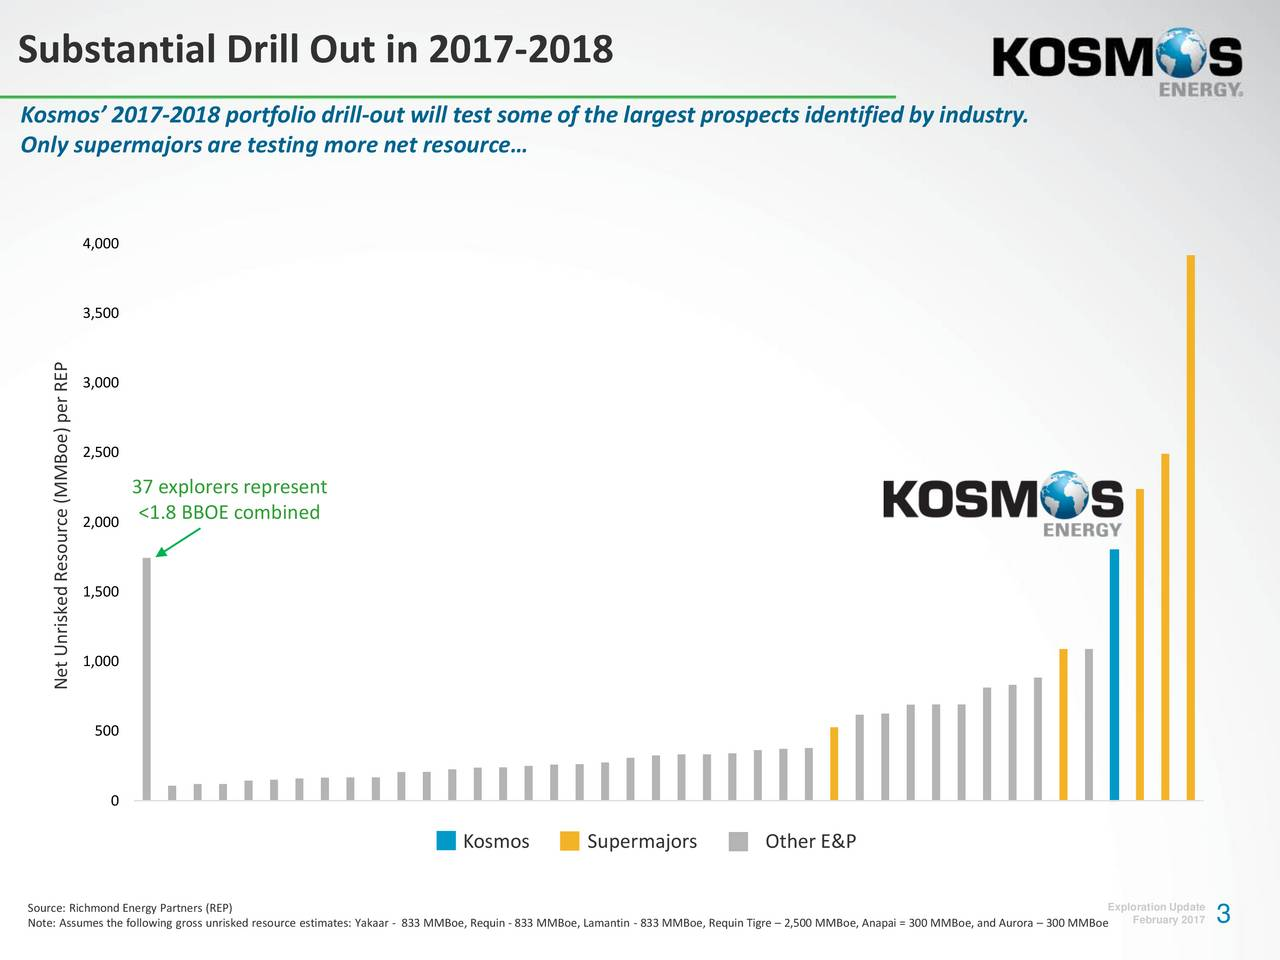 Kosmos 2017-2018 portfoliodrill-out will test some of the largest prospectsidentified by industry. Only supermajorsare testing more net resource 4,000 3,500 3,000 )per REP 2,500 MMBoe 37 explorers represent 2,000 <1.8 BBOE combined 1,500 1,000 Net Unrisked Resource ( 500 0 Kosmos Supermajors Other E&P Source: Richmond Energy Partners (REP) Exploration Update Note: Assumes the following gross unrisked resource estimates: Yakaar - 833 MMBoe, Requin - 833 MMBoe, Lamantin - 833 MMBoe, Requin Tigre  2,500 MMBoe, Anapai = 300 MMBoe, and Aurora  300 MMBoe